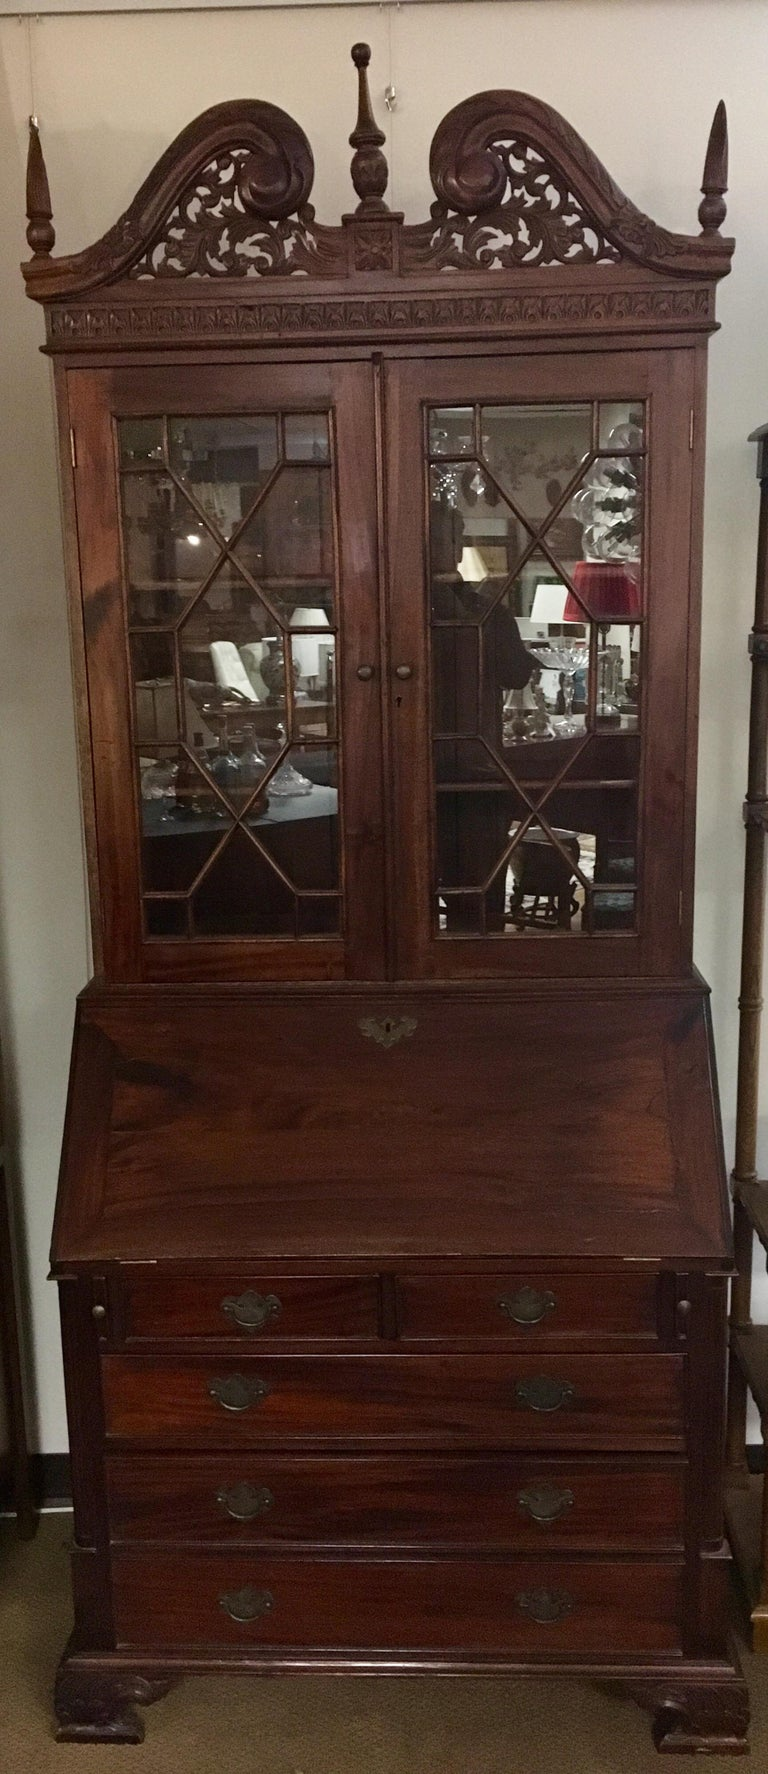 Early George III antique drop front secretary desk with gorgeous detail and multiple drawers and compartments. Features an intricately carved pierced pediment and finials and fretwork ove glass doors.